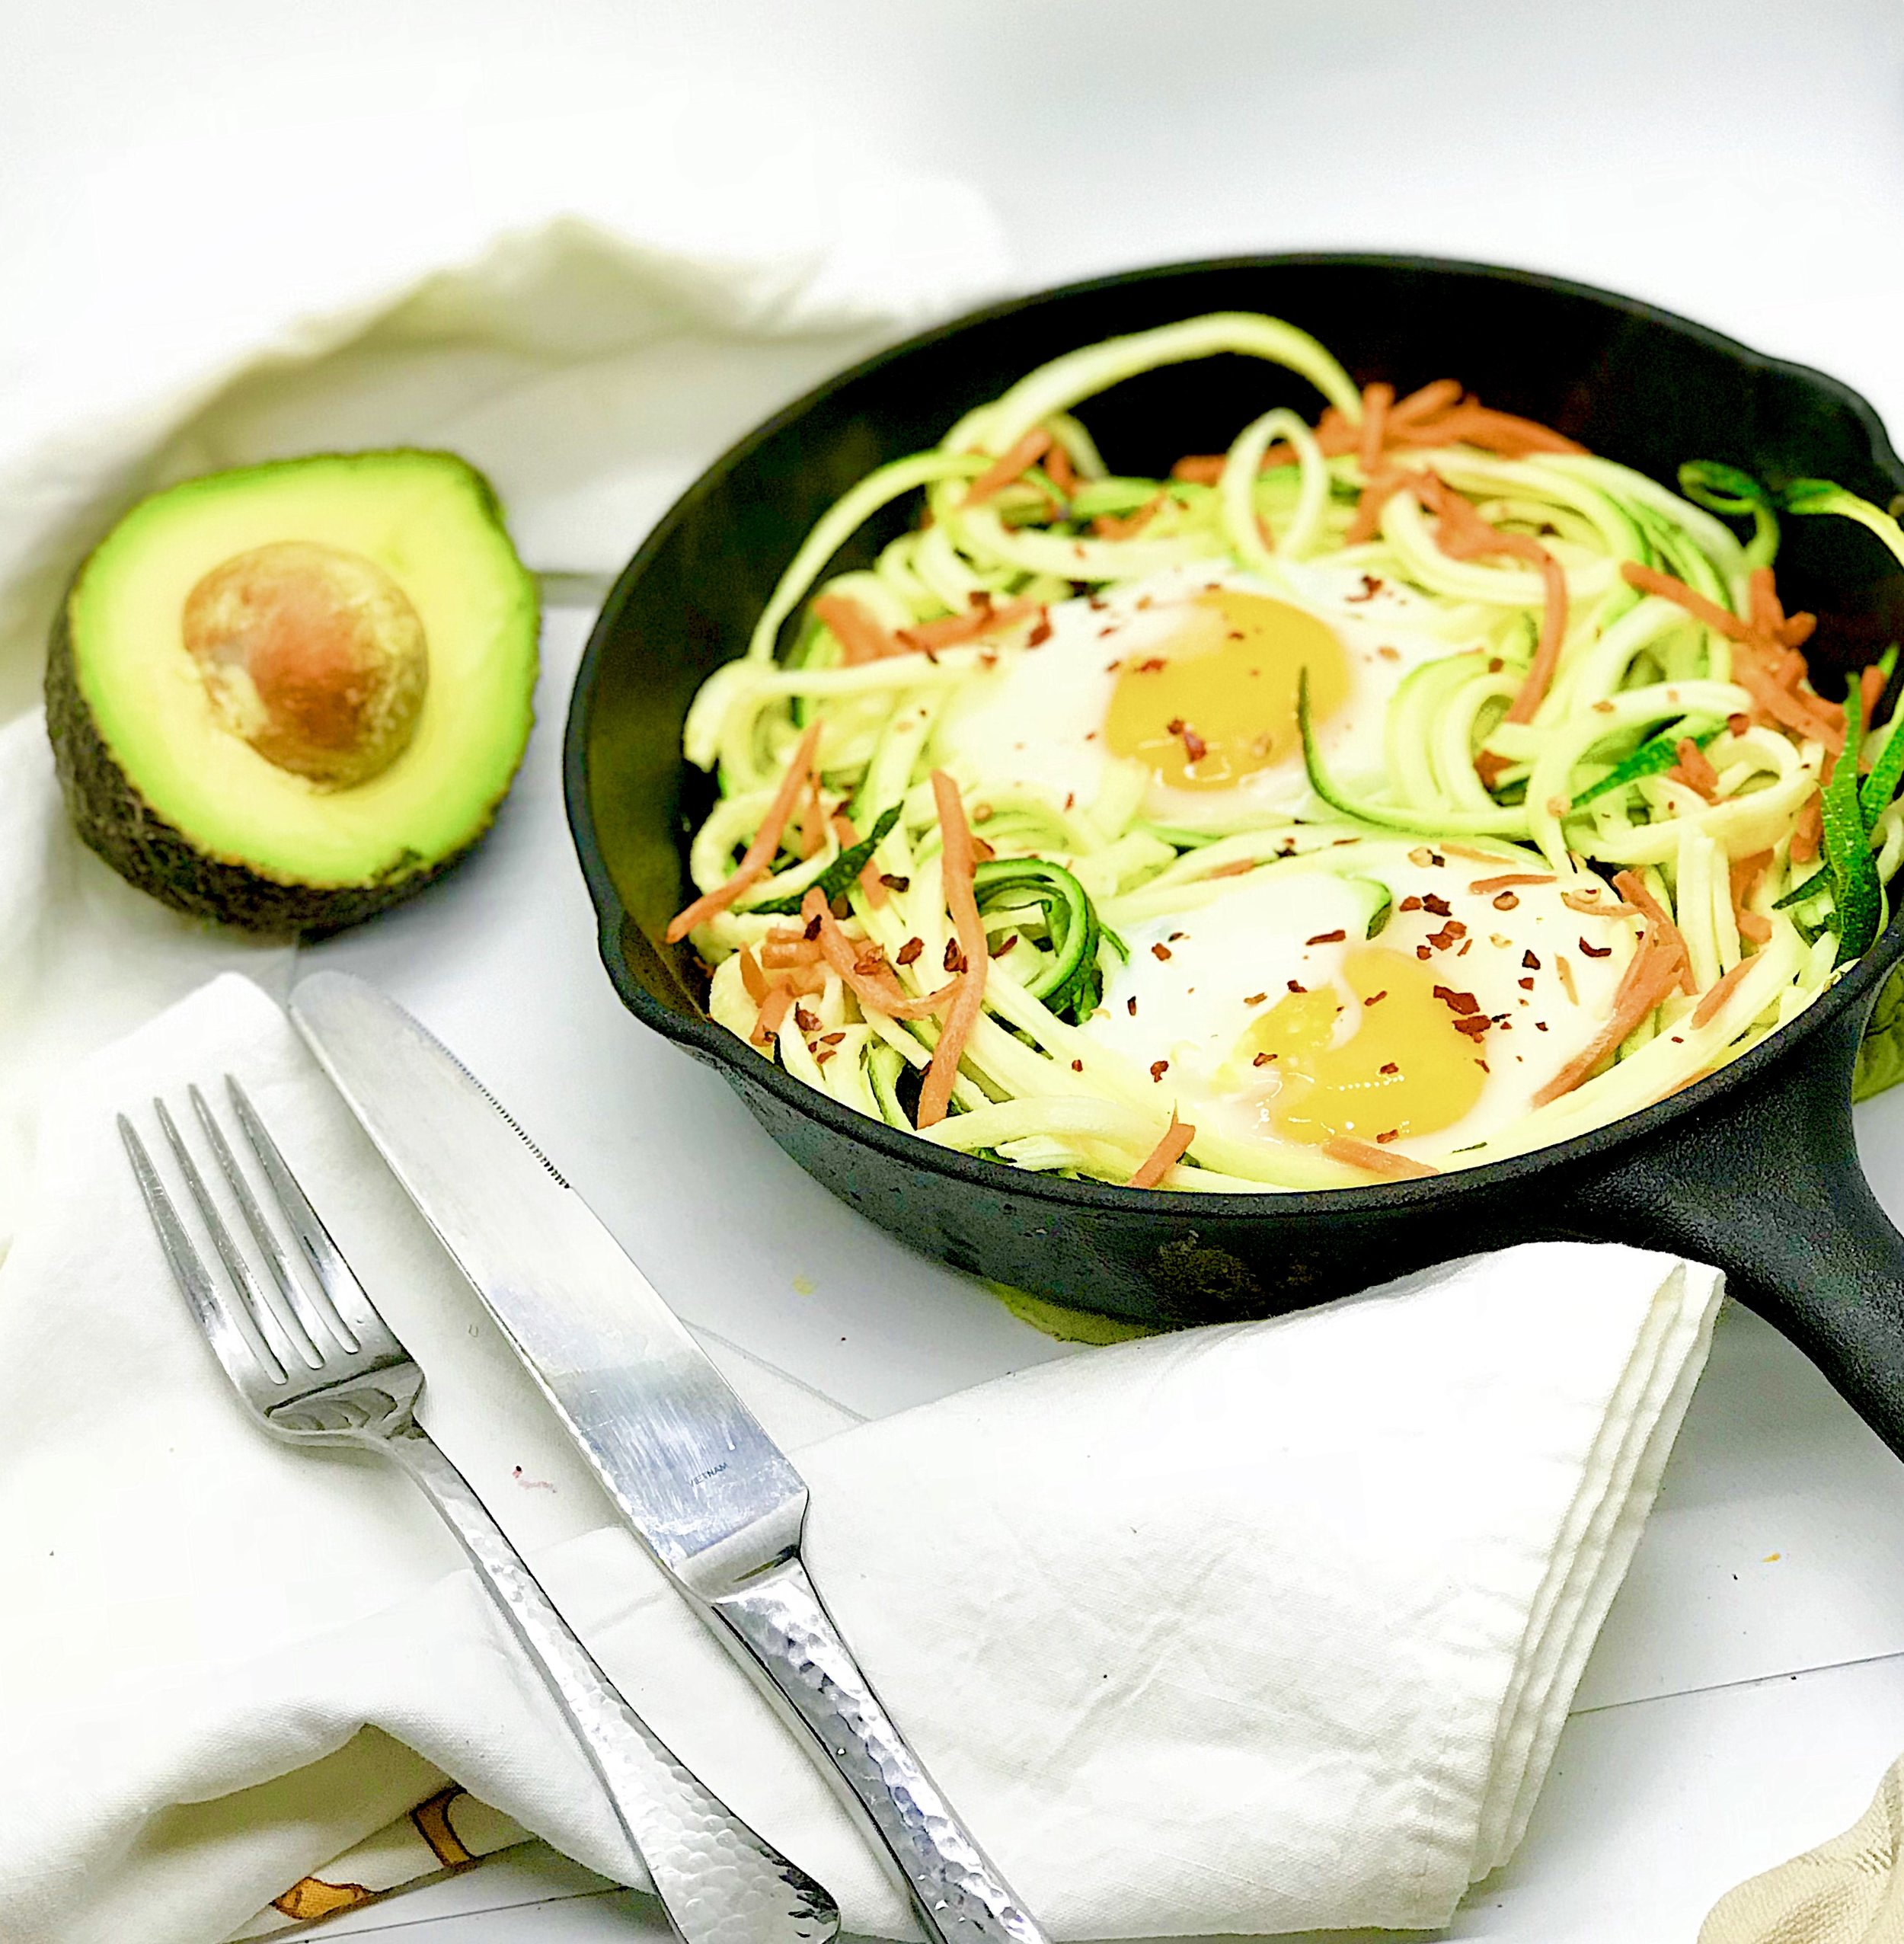 Eggs in Zoodle Nests. This meal is so simple, yet so delicious. With just three ingredients and less than 10 minutes, make a perfectly portioned meal.